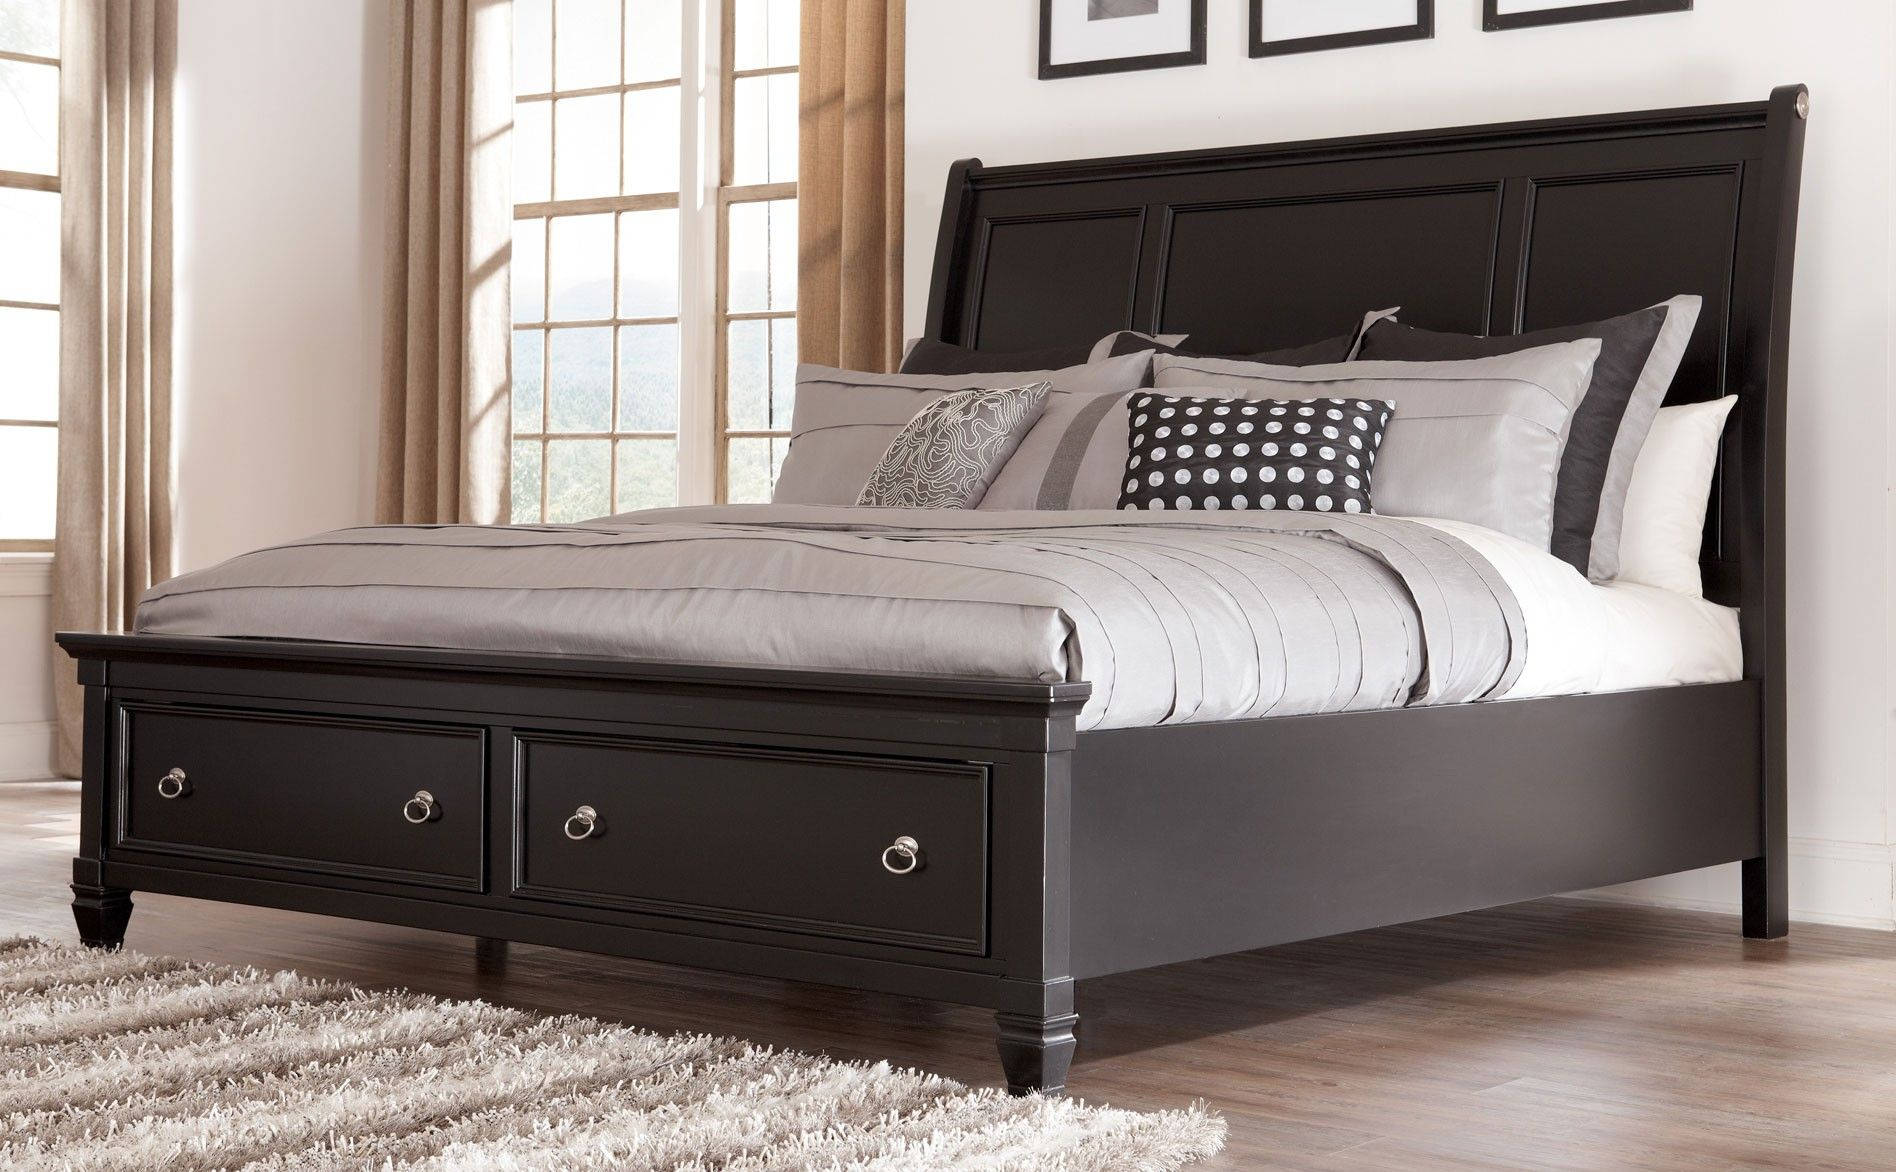 greensburg king sleigh bed with storage footboard by millennium at marlo furniture